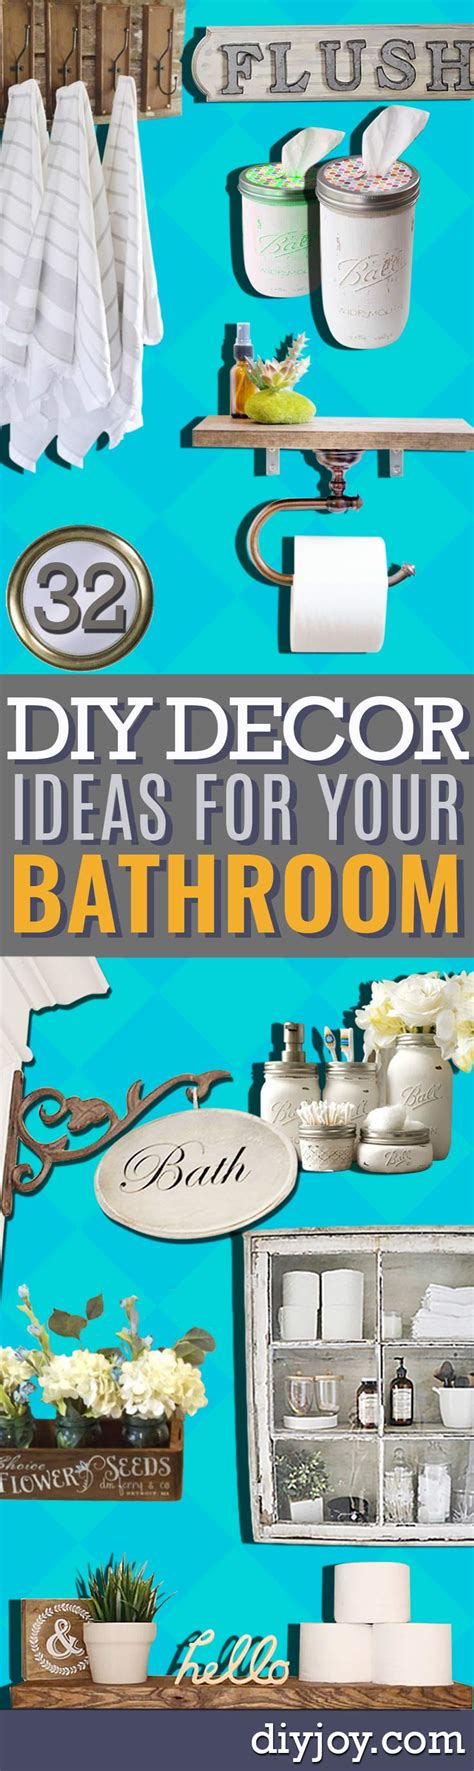 do it yourself bathroom ideas 31 brilliant diy decor ideas for your bathroom